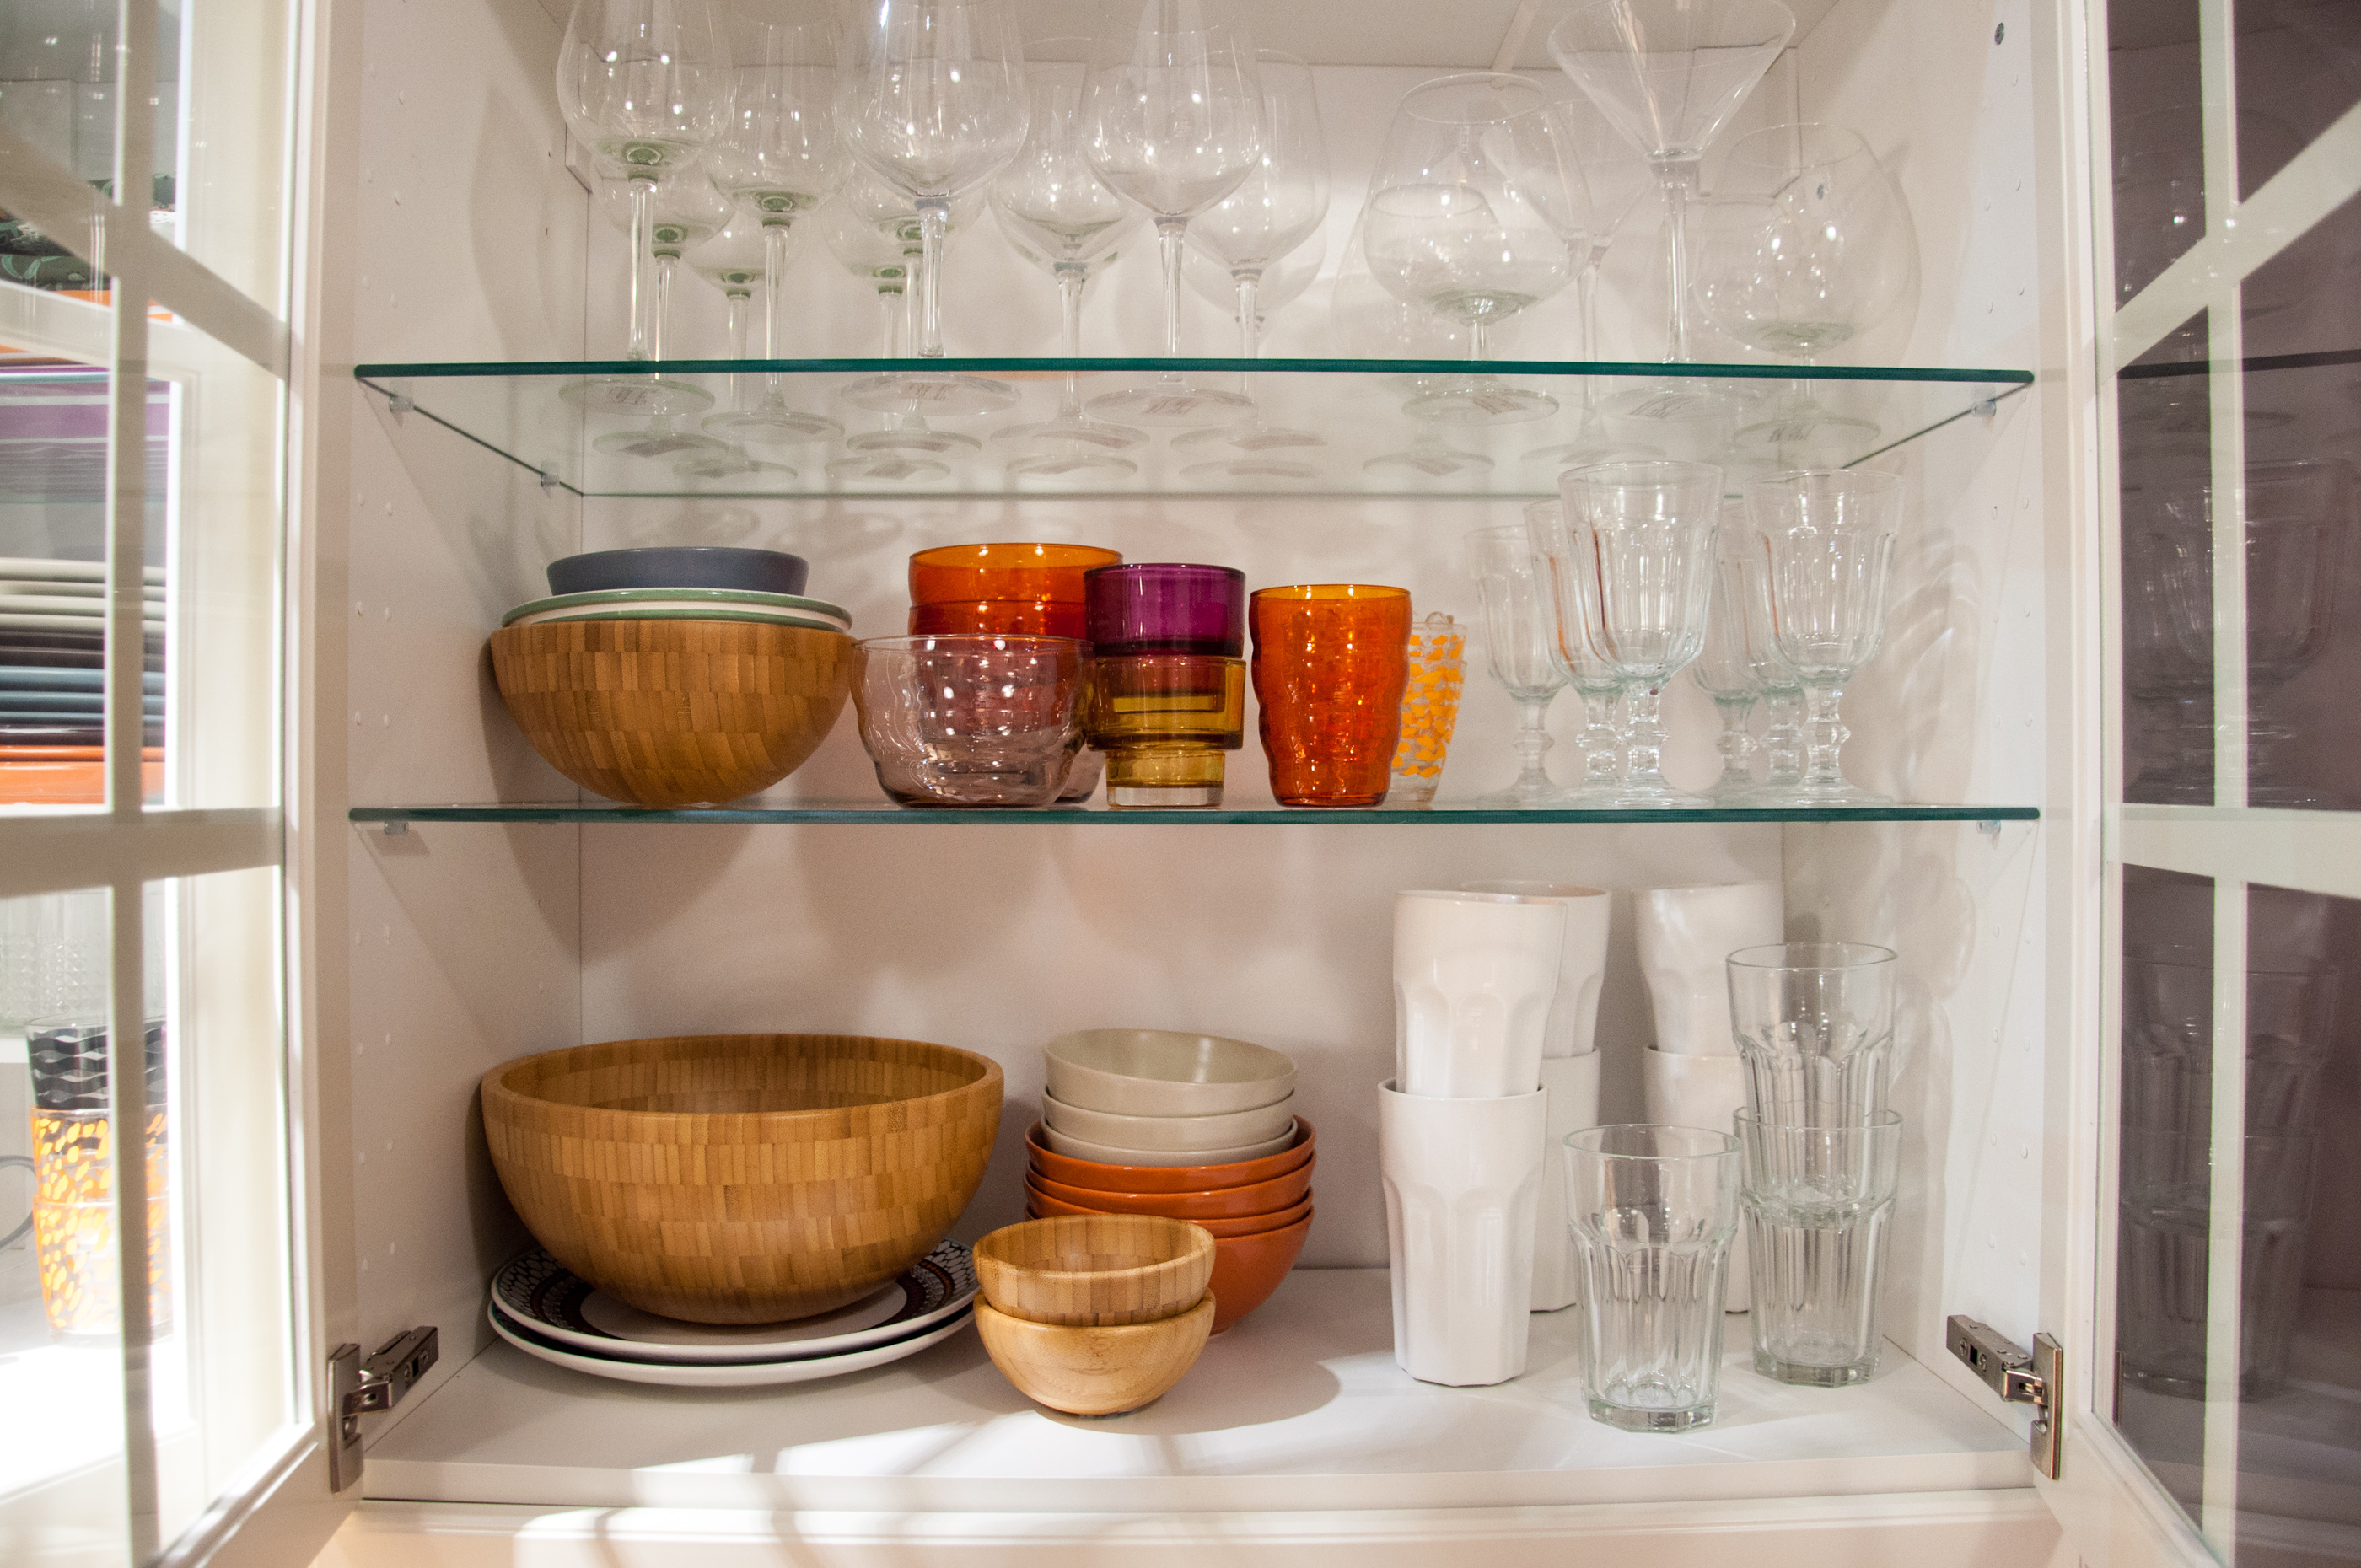 Opened cupboard with kitchenware inside photo